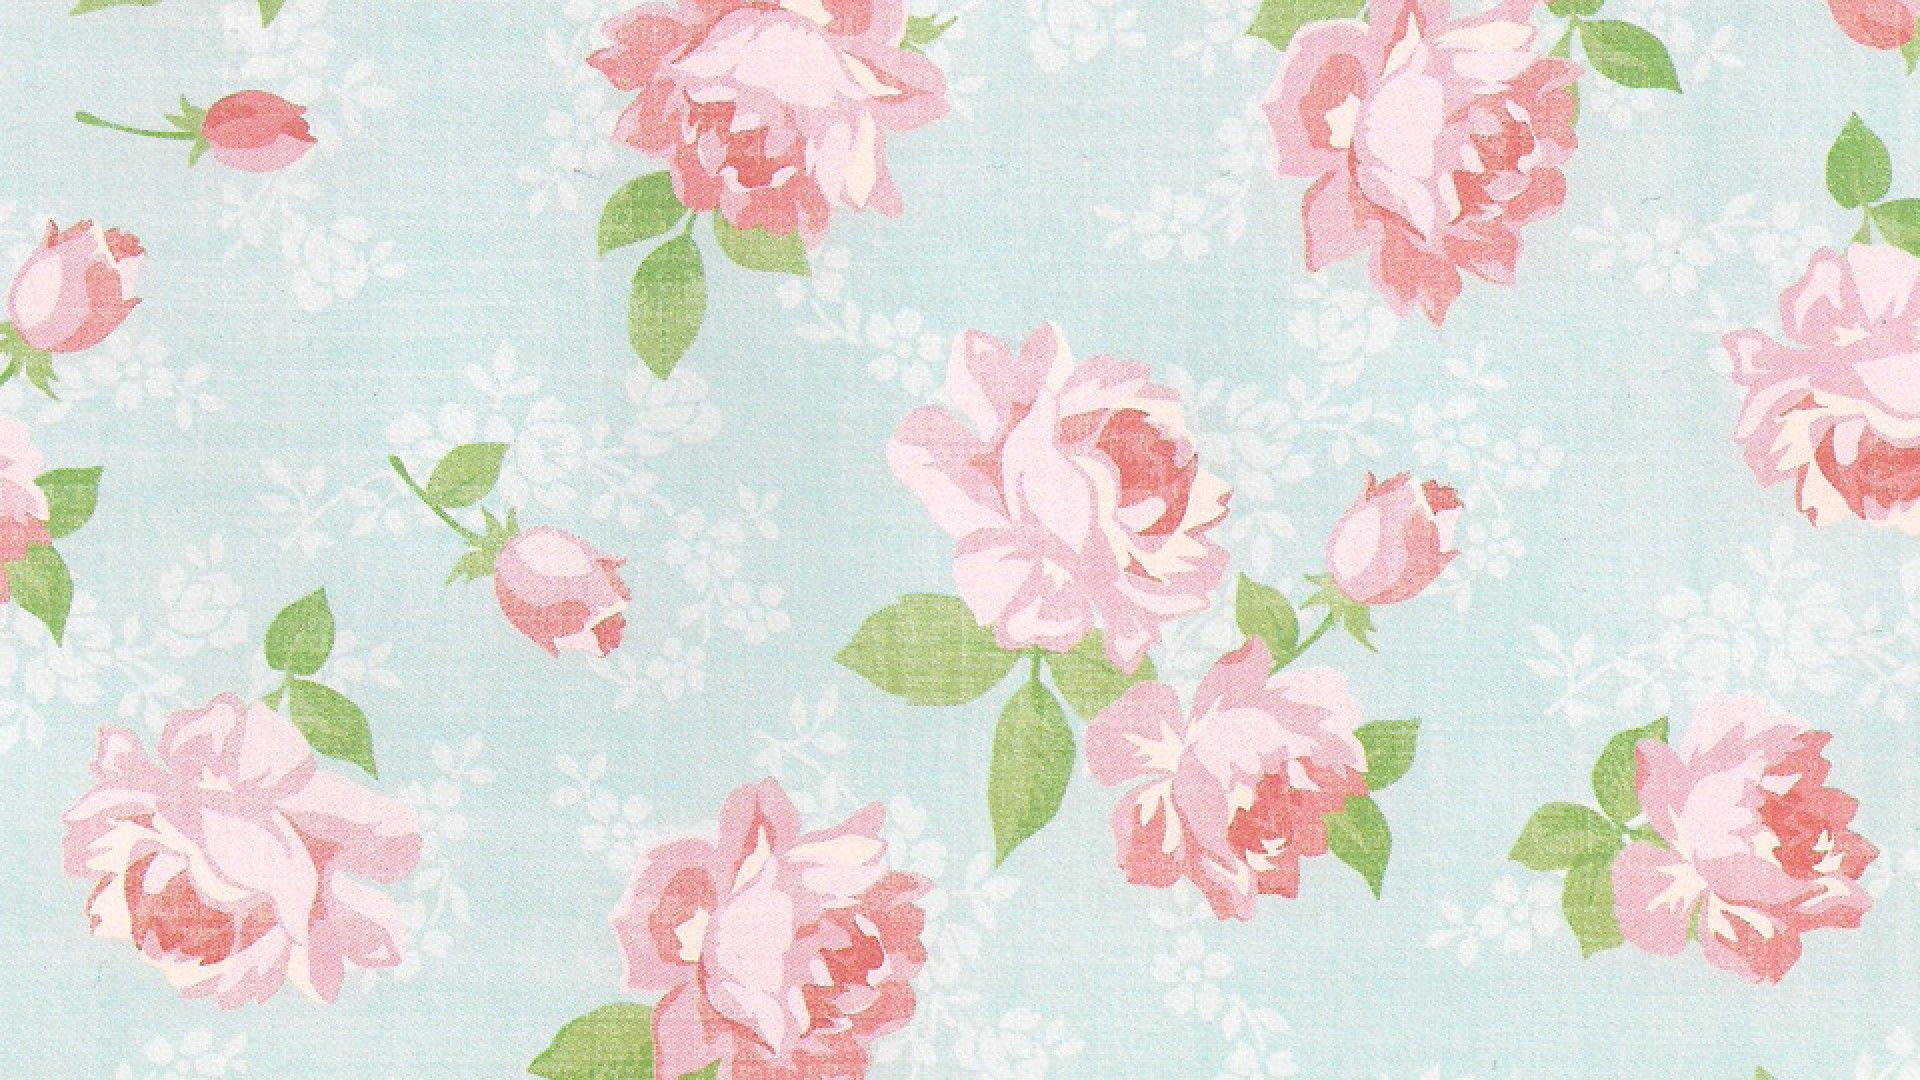 Old Fashioned Floral Wallpaper Pink Vintage Floral Wallpapers Hd